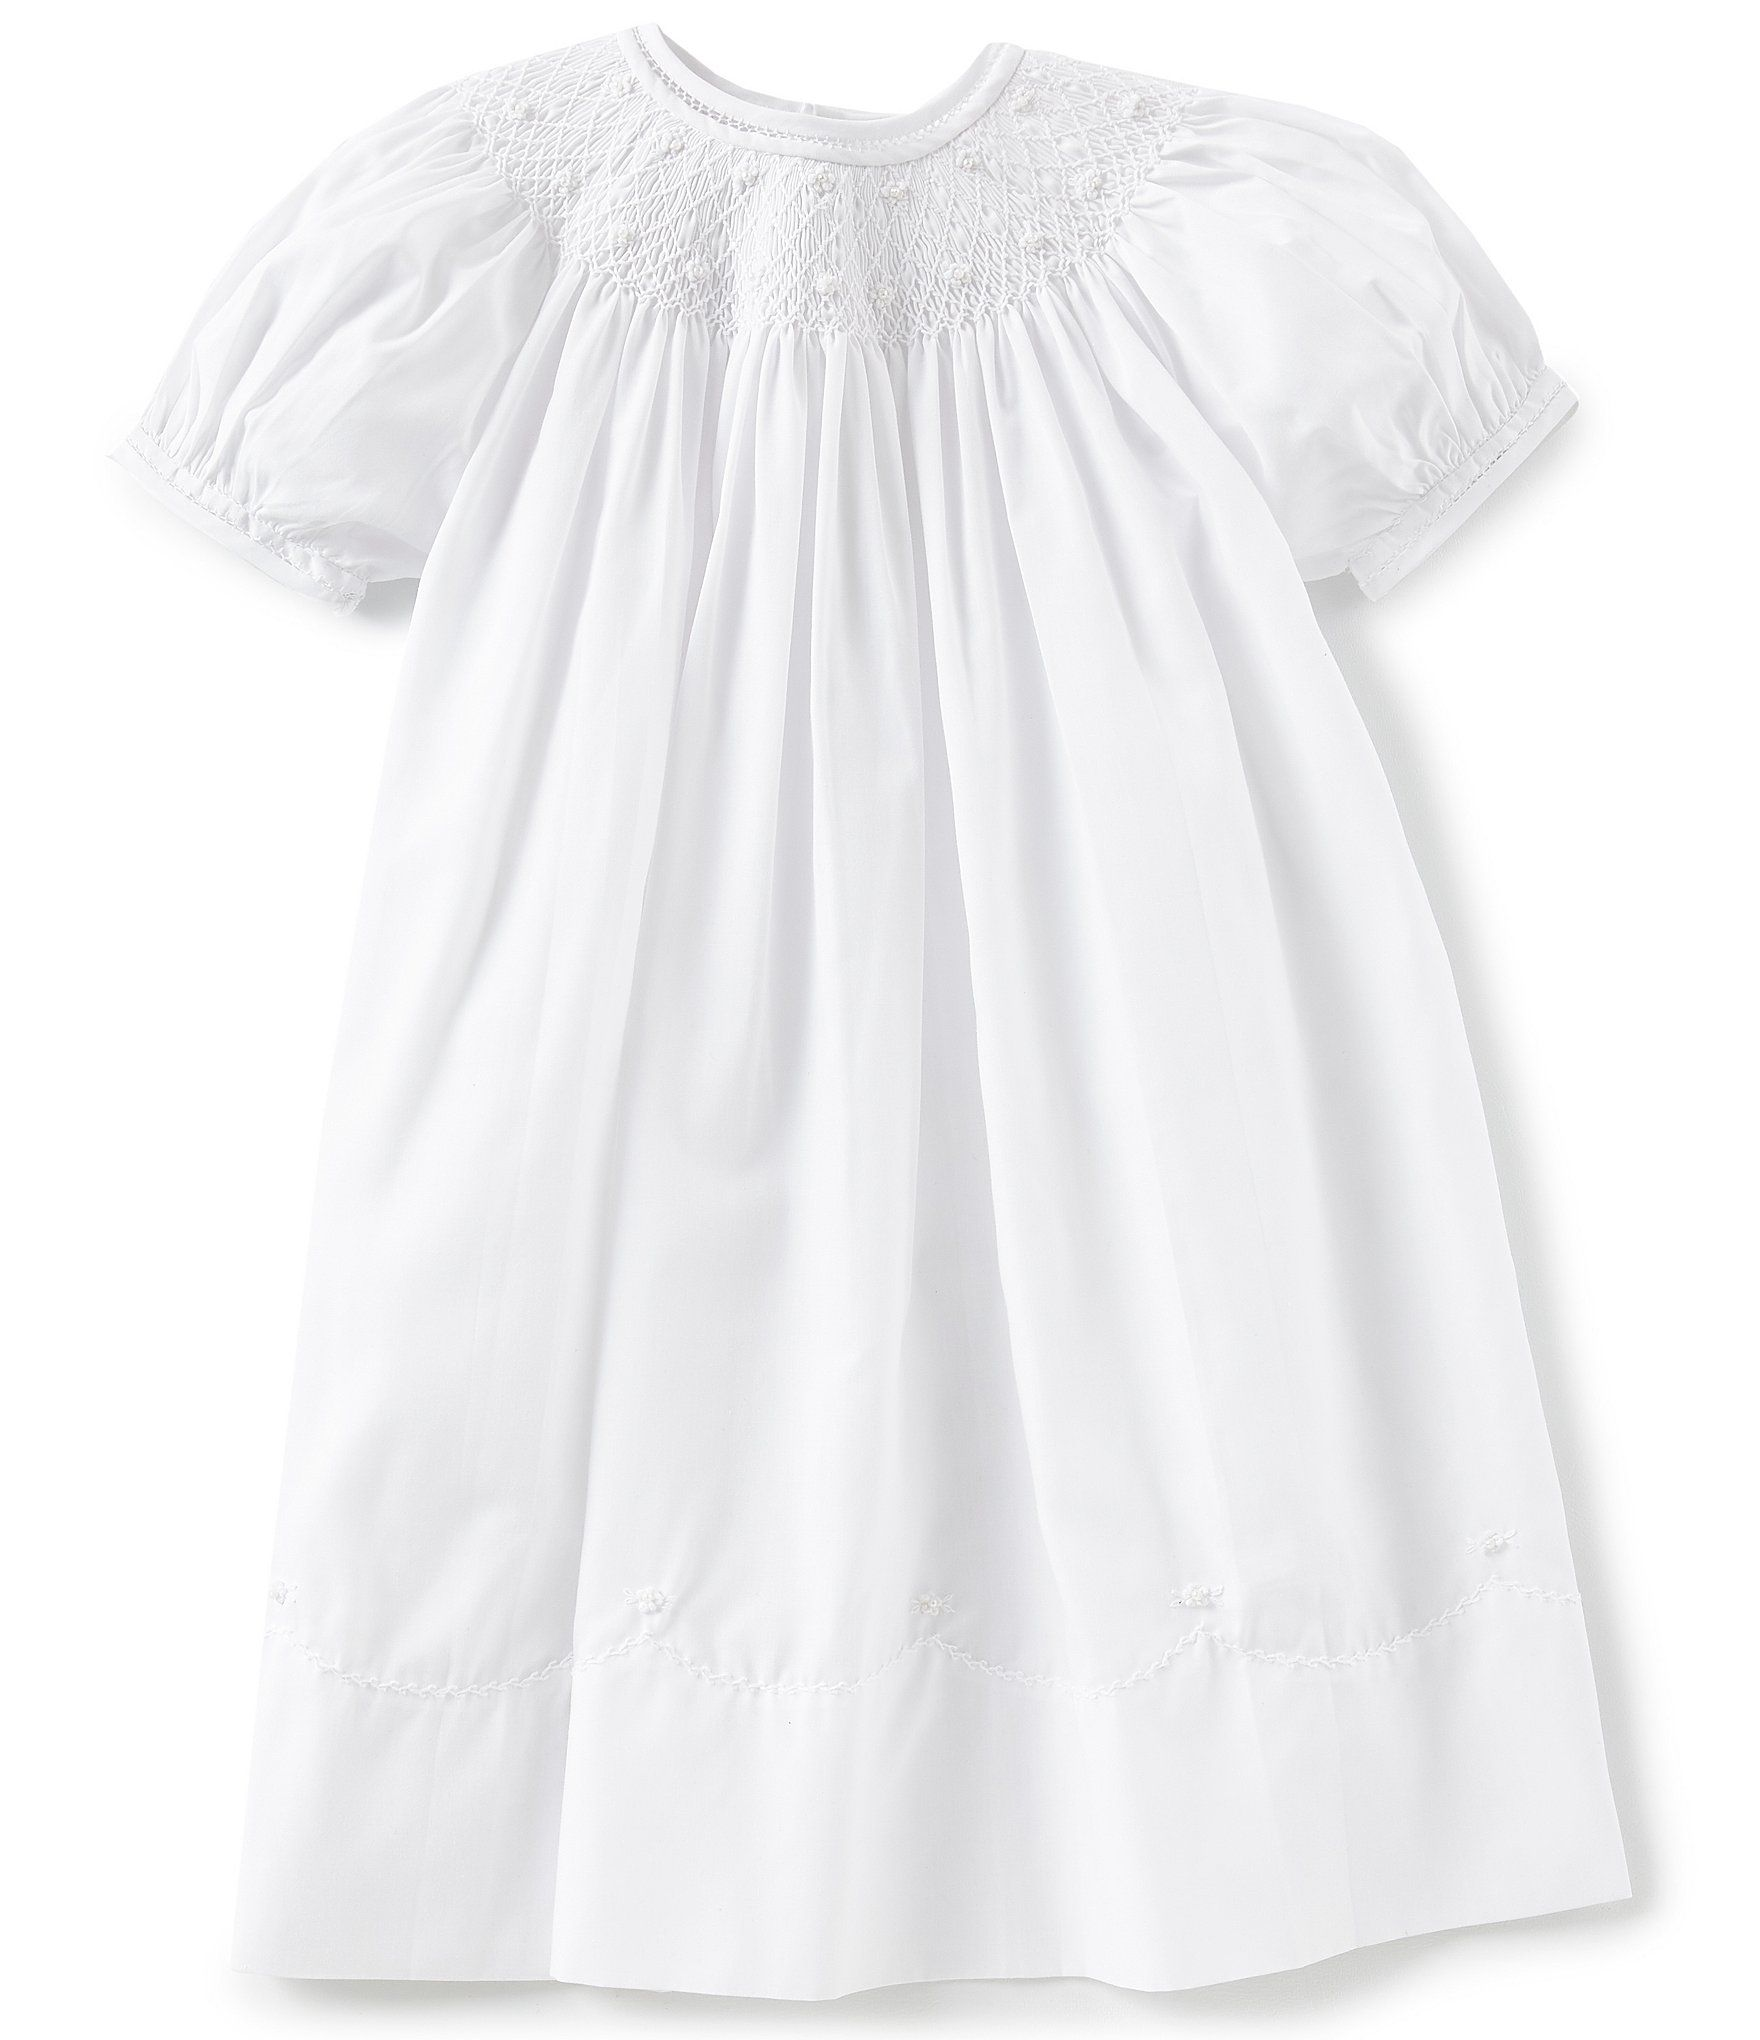 191dd389fb525 Shop for Feltman Brothers Baby Girl 12-24 Months Midgie Dress at  Dillards.com. Visit Dillards.com to find clothing, accessories, shoes,  cosmetics & more.